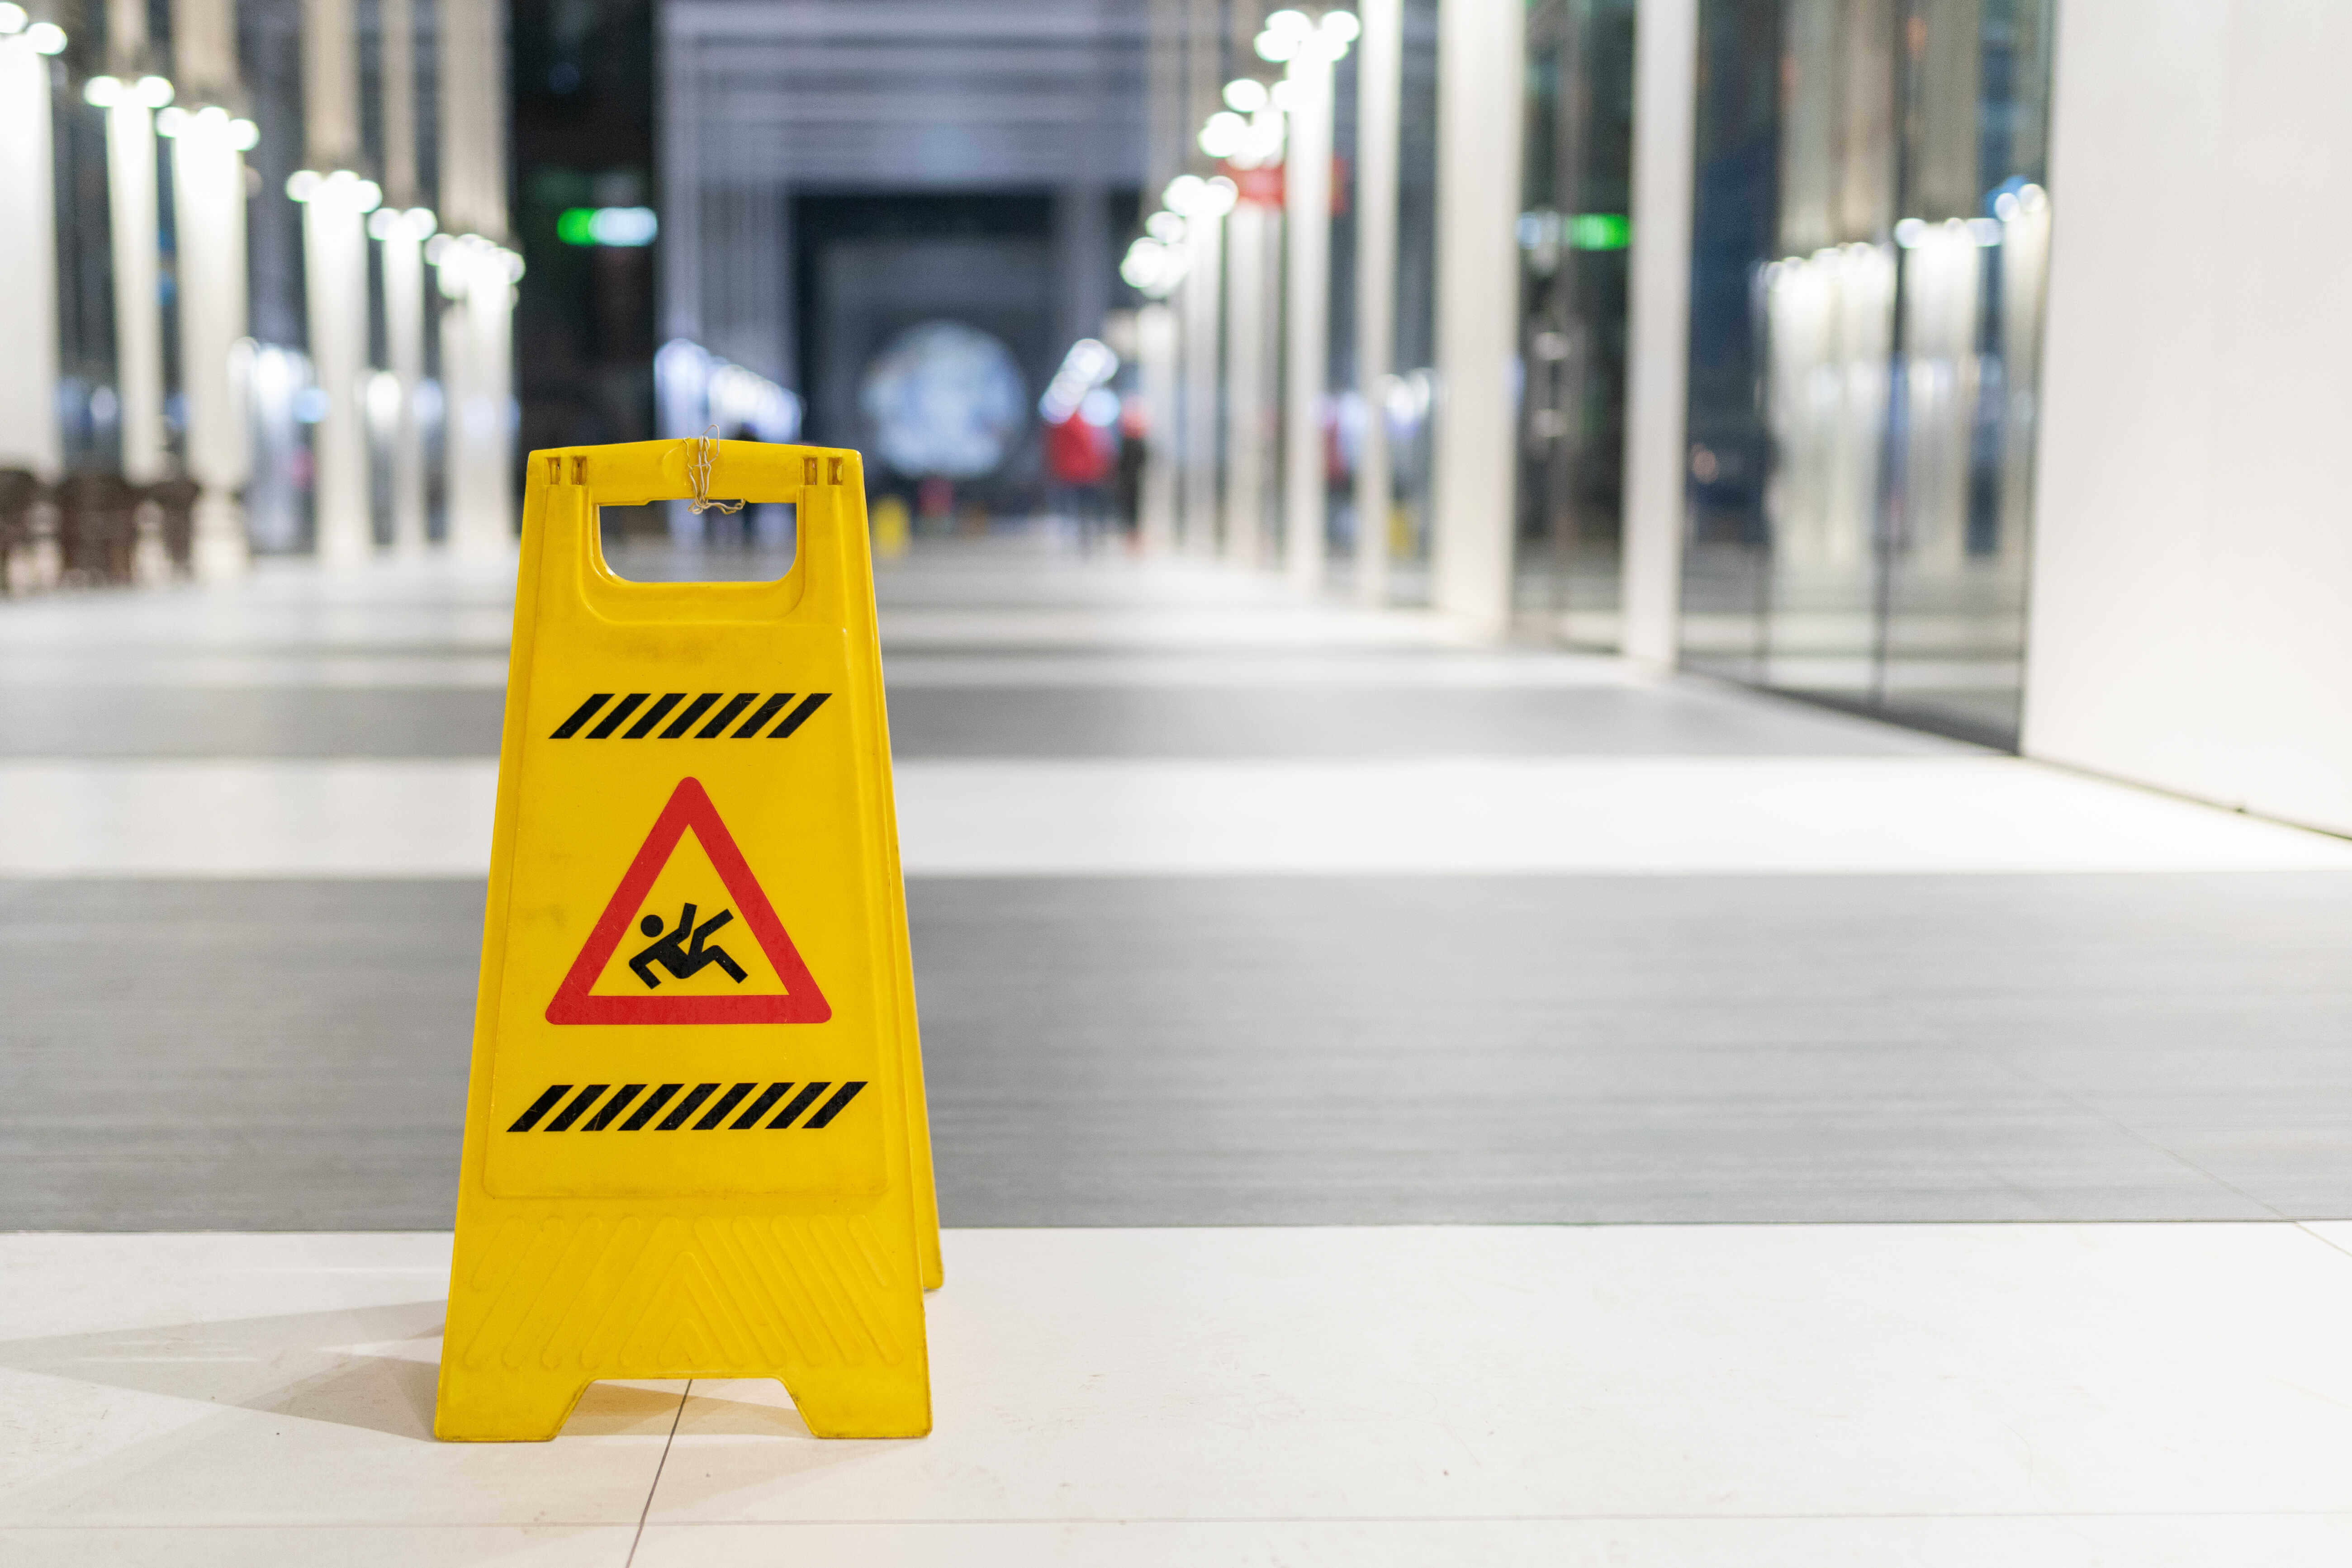 wet floor sign in hallway